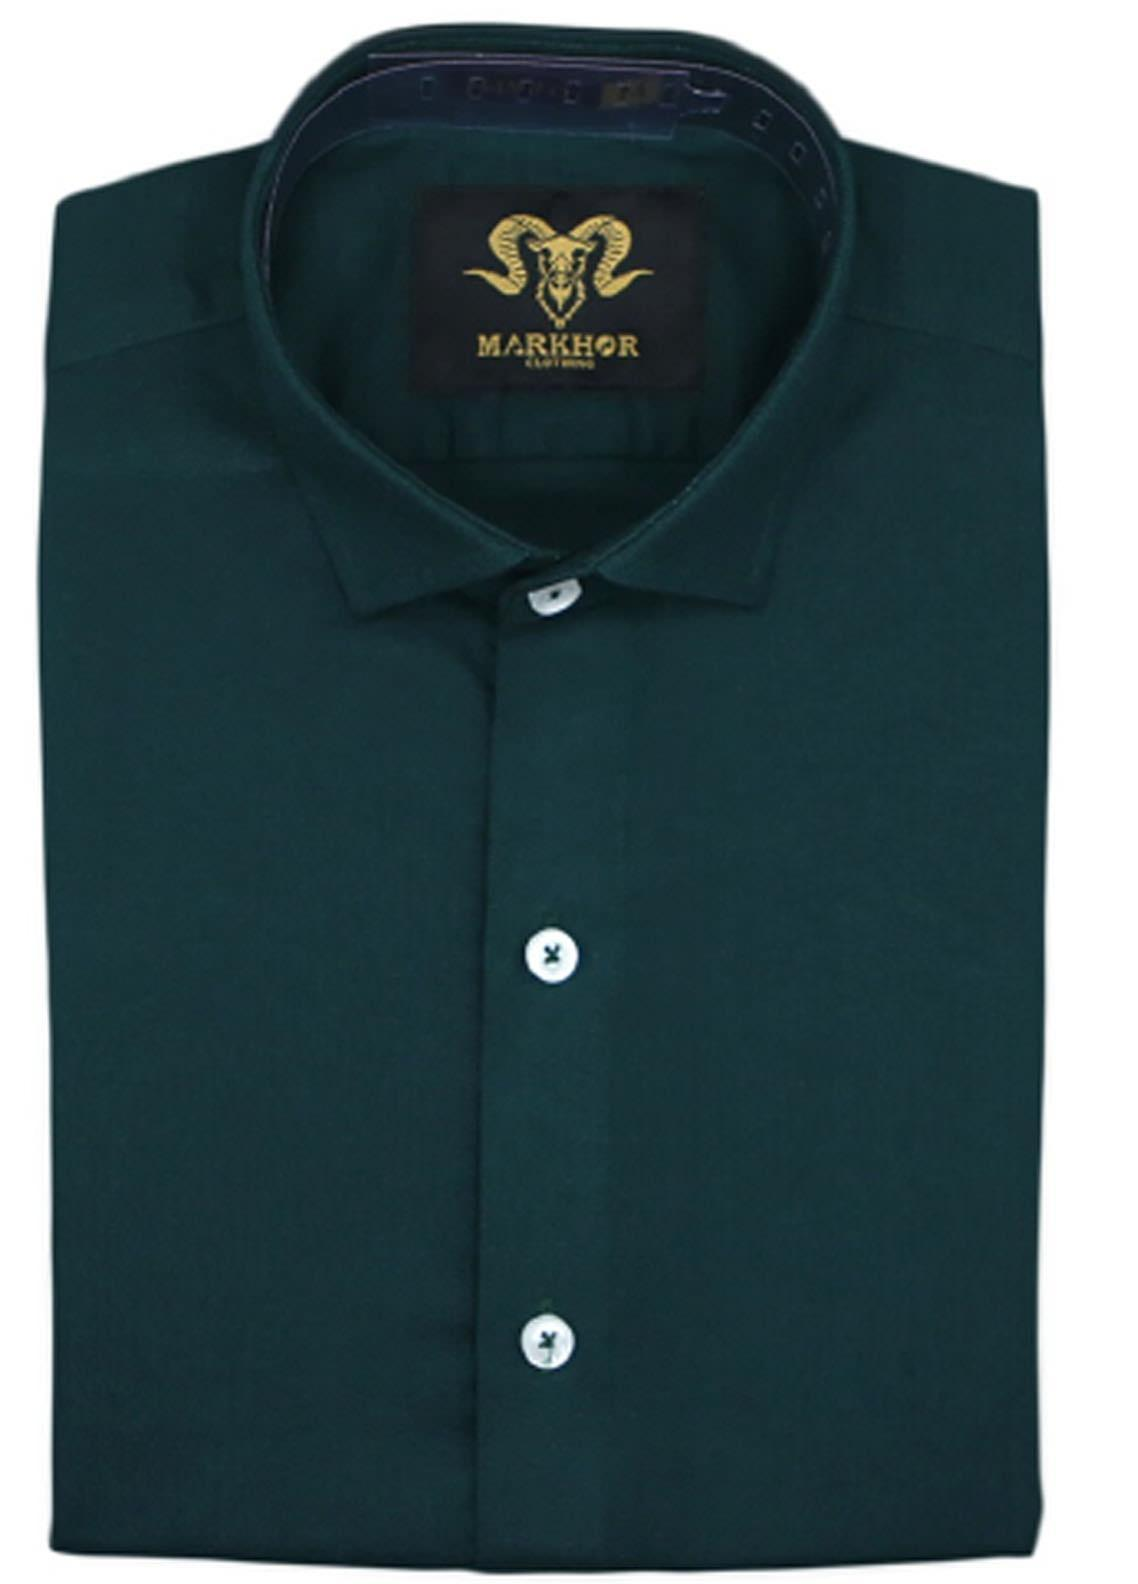 Markhor Clothing Chambray Cotton Formal Men Shirts - Crystal Green Royal  Chambray Cotton Slim Fit Formal Shirt